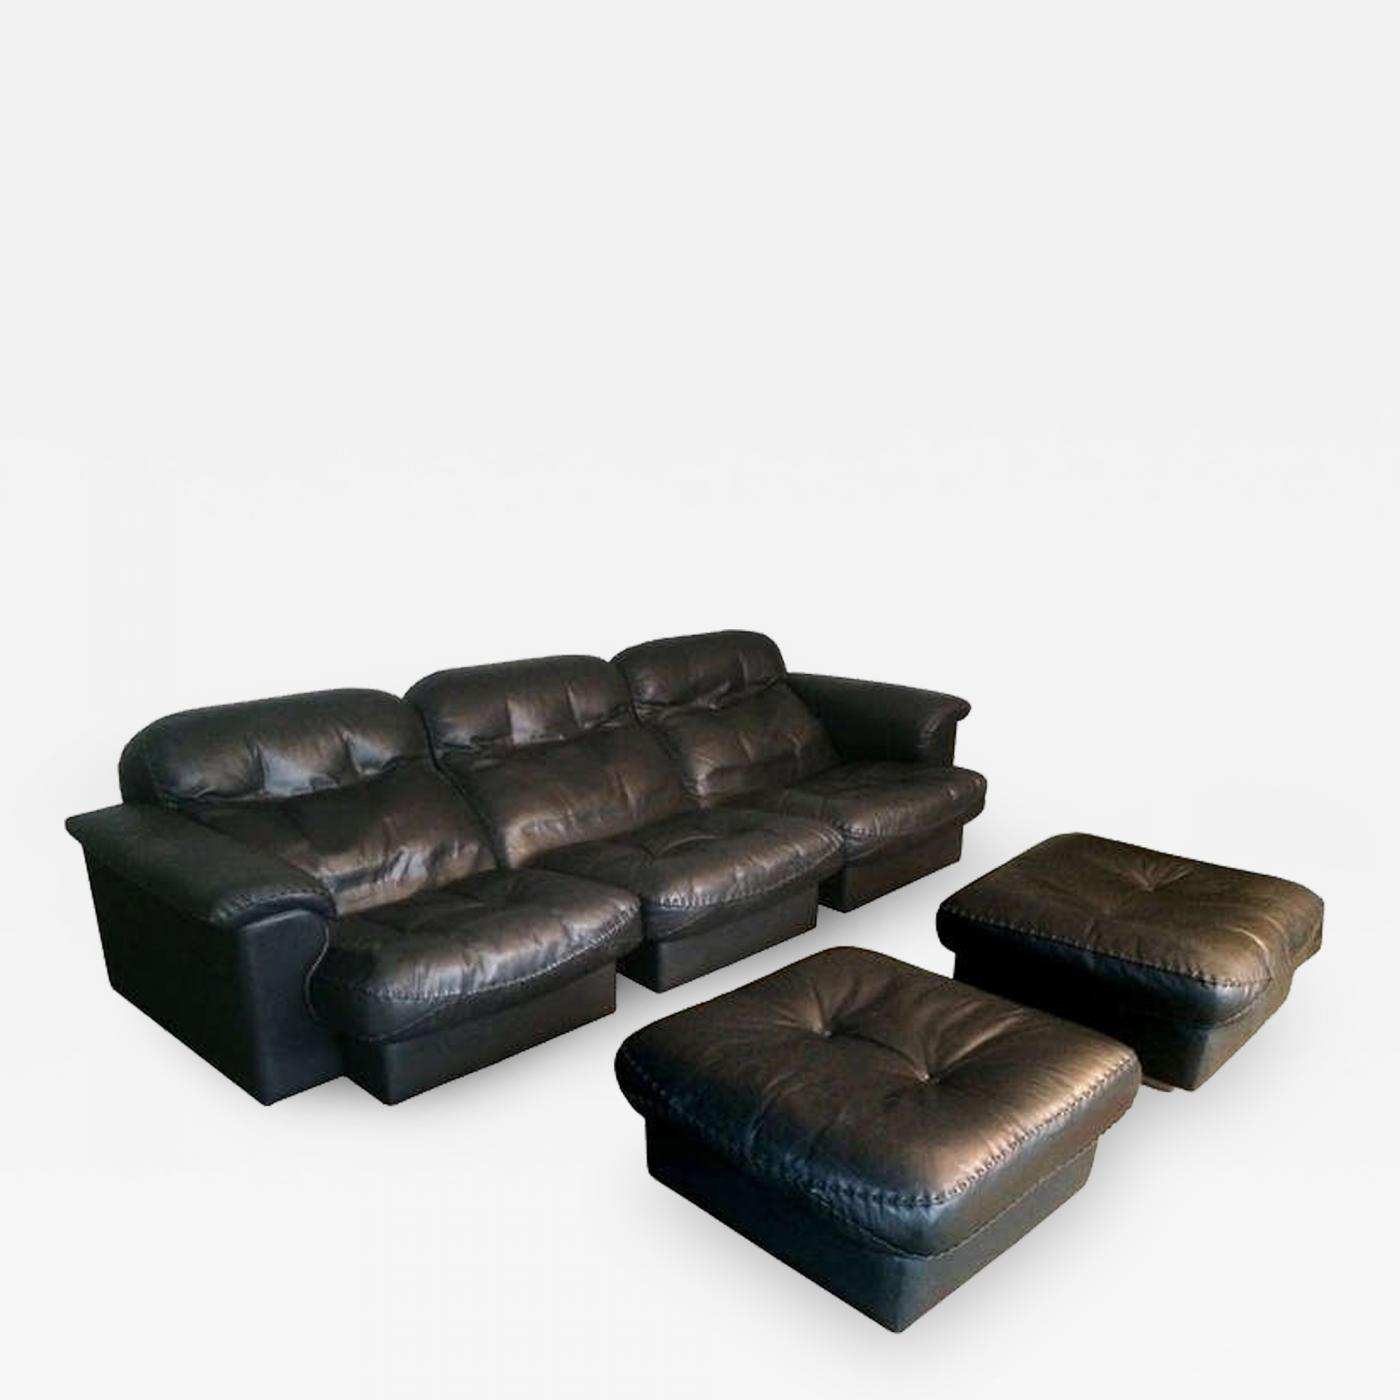 de Sede - De Sede 3 Seater Sofa in Black Leather